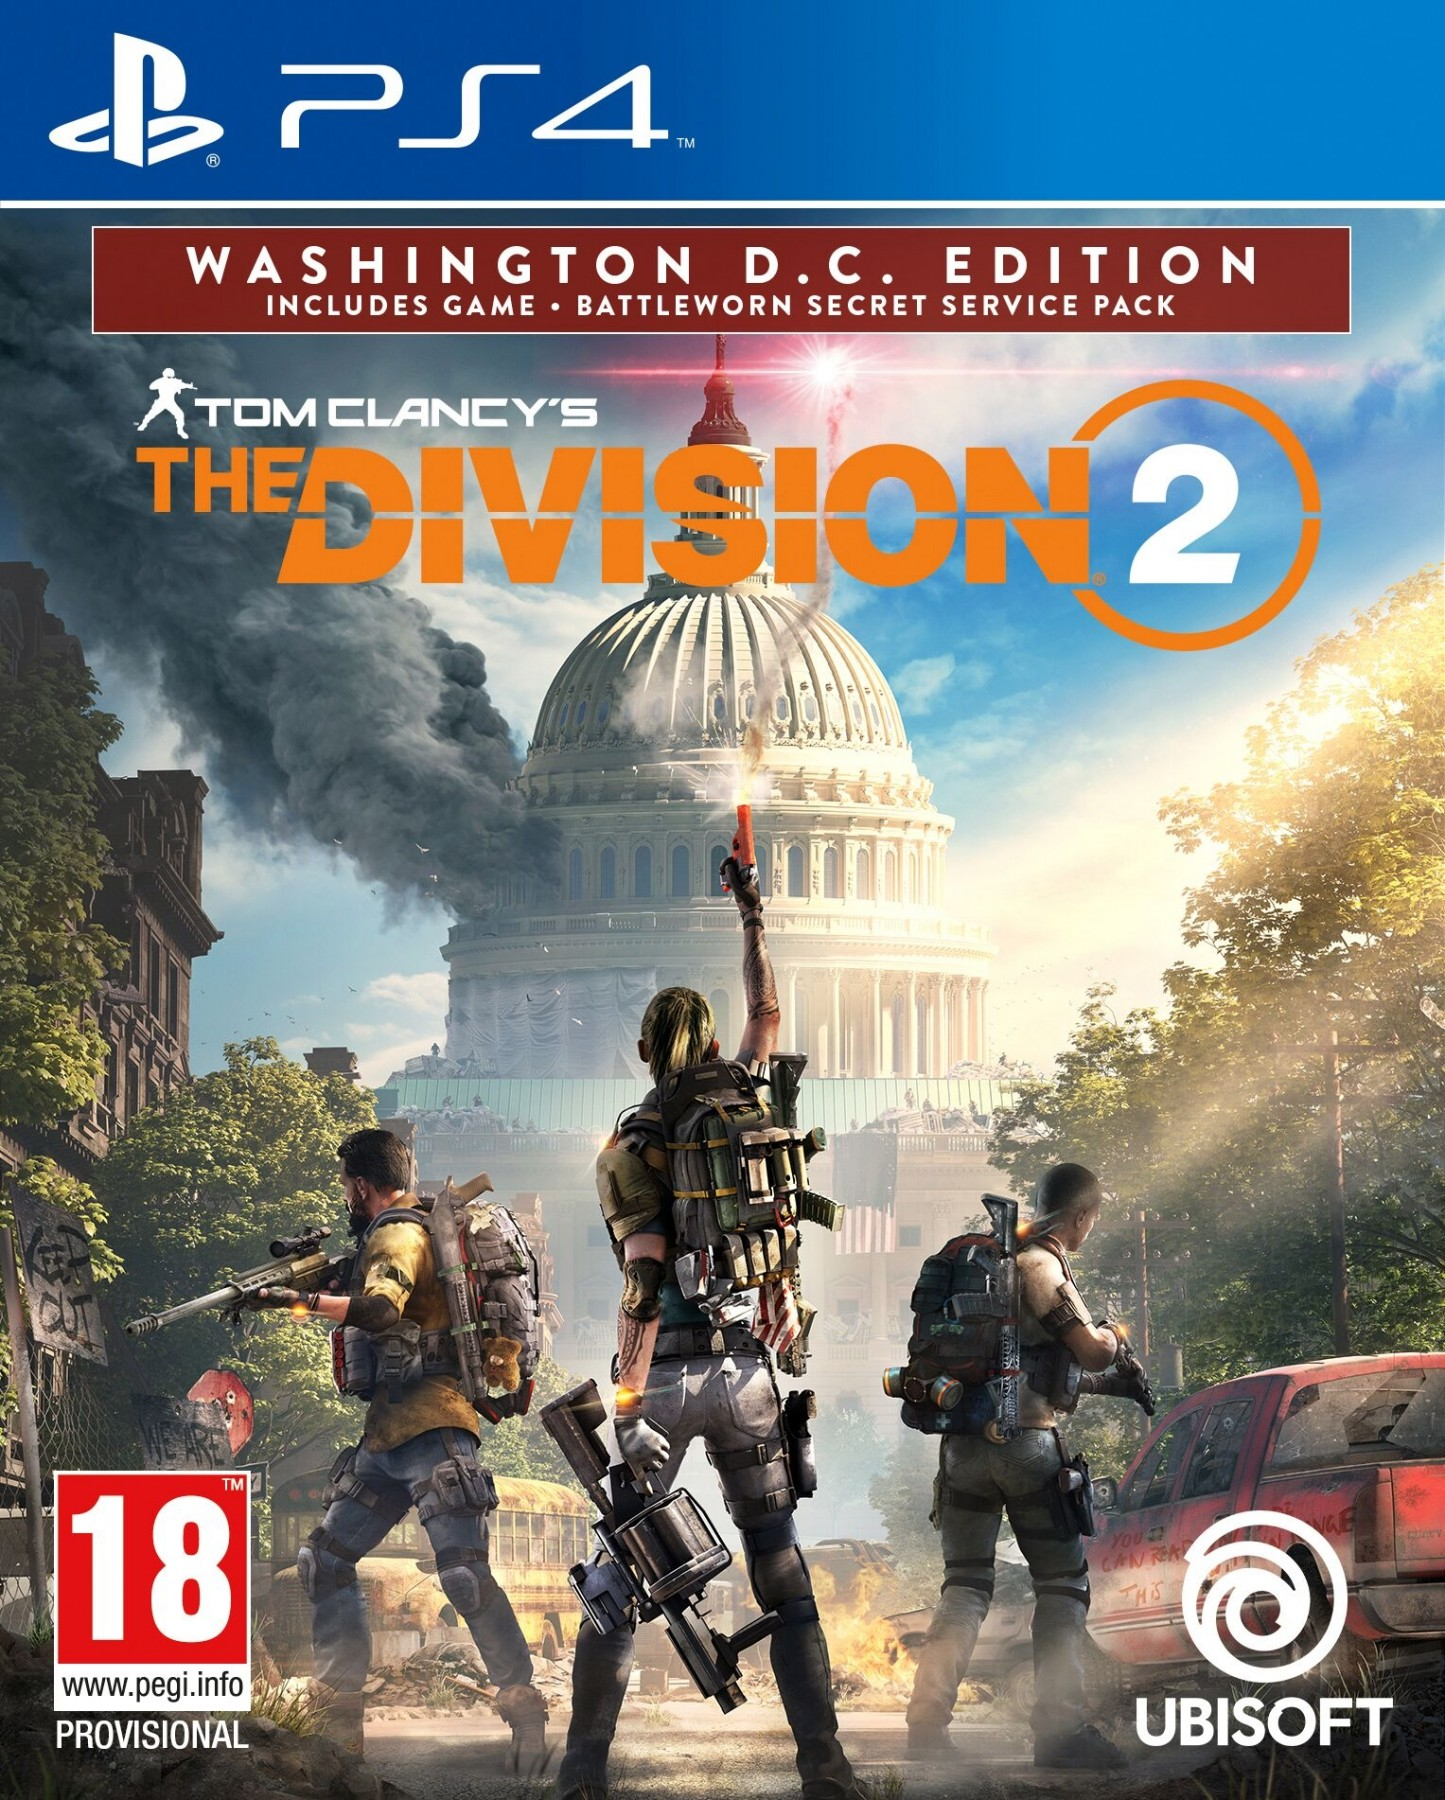 Tom Clancy's The Division 2. Washington D.C. Edition PS4